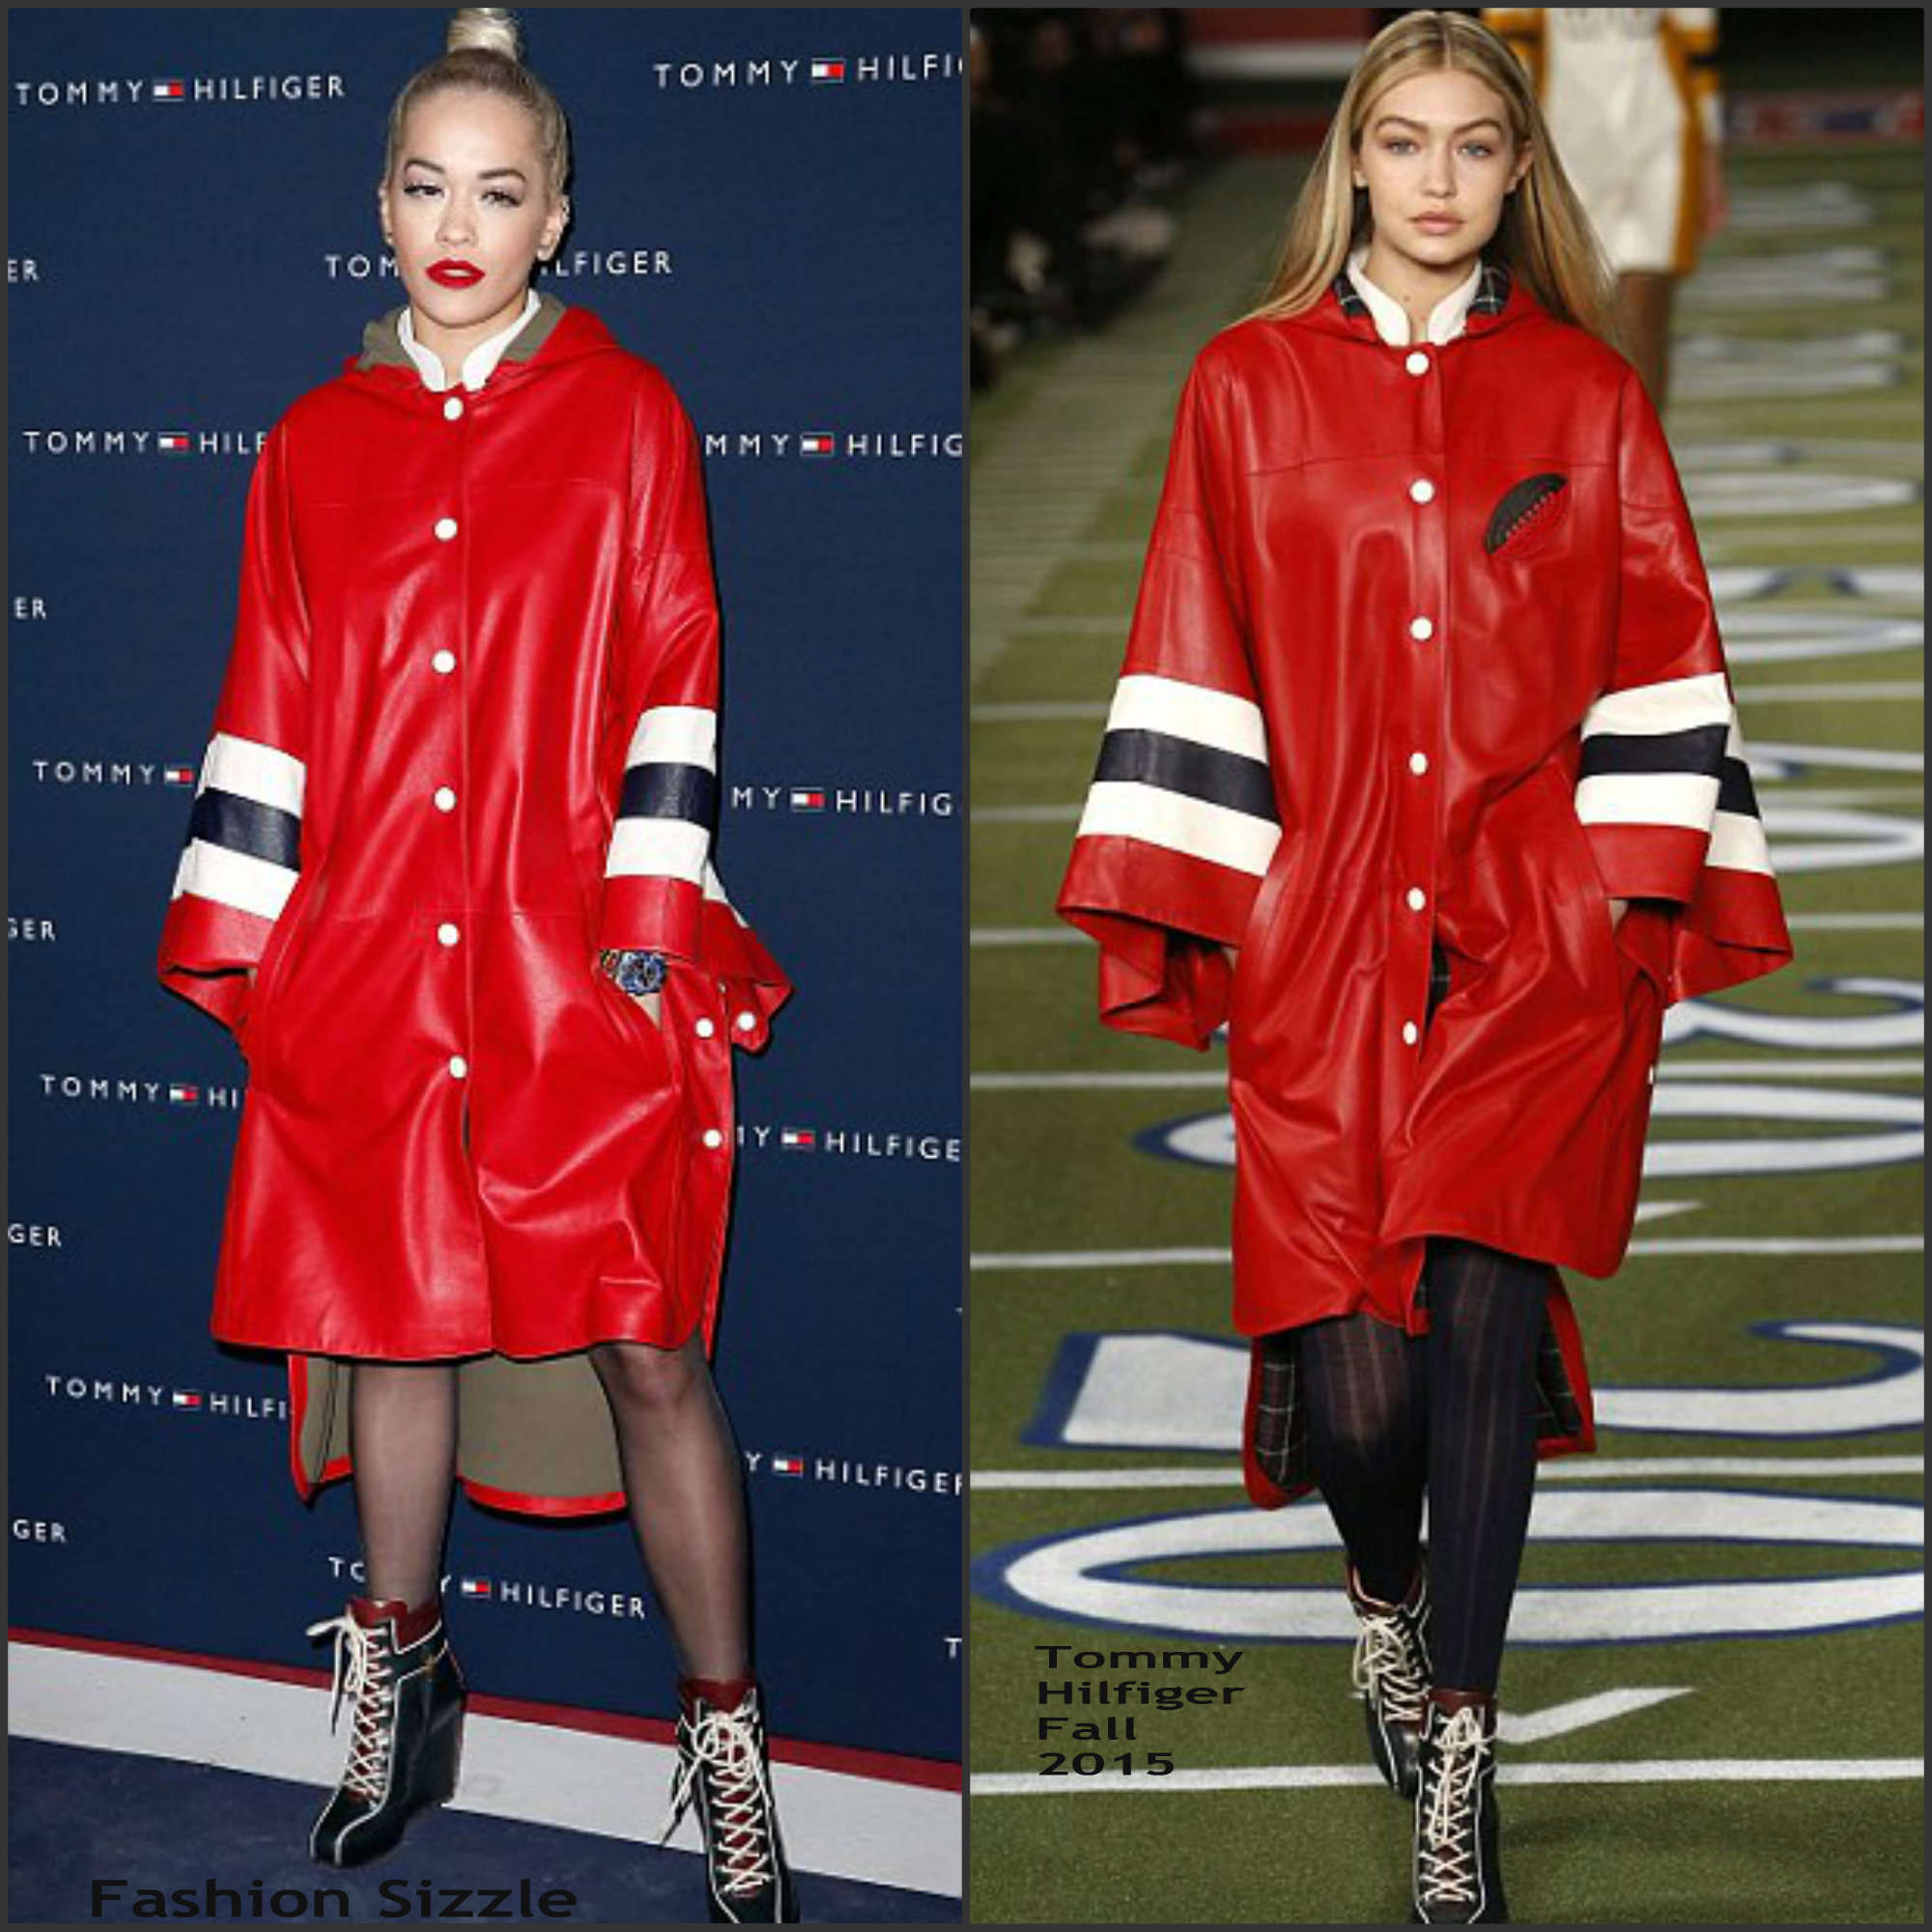 Rita-Ora-in-Tommy-Hilfiger-Tommy-Hilfiger-Boulevard-Capucines-Boutique-Opening